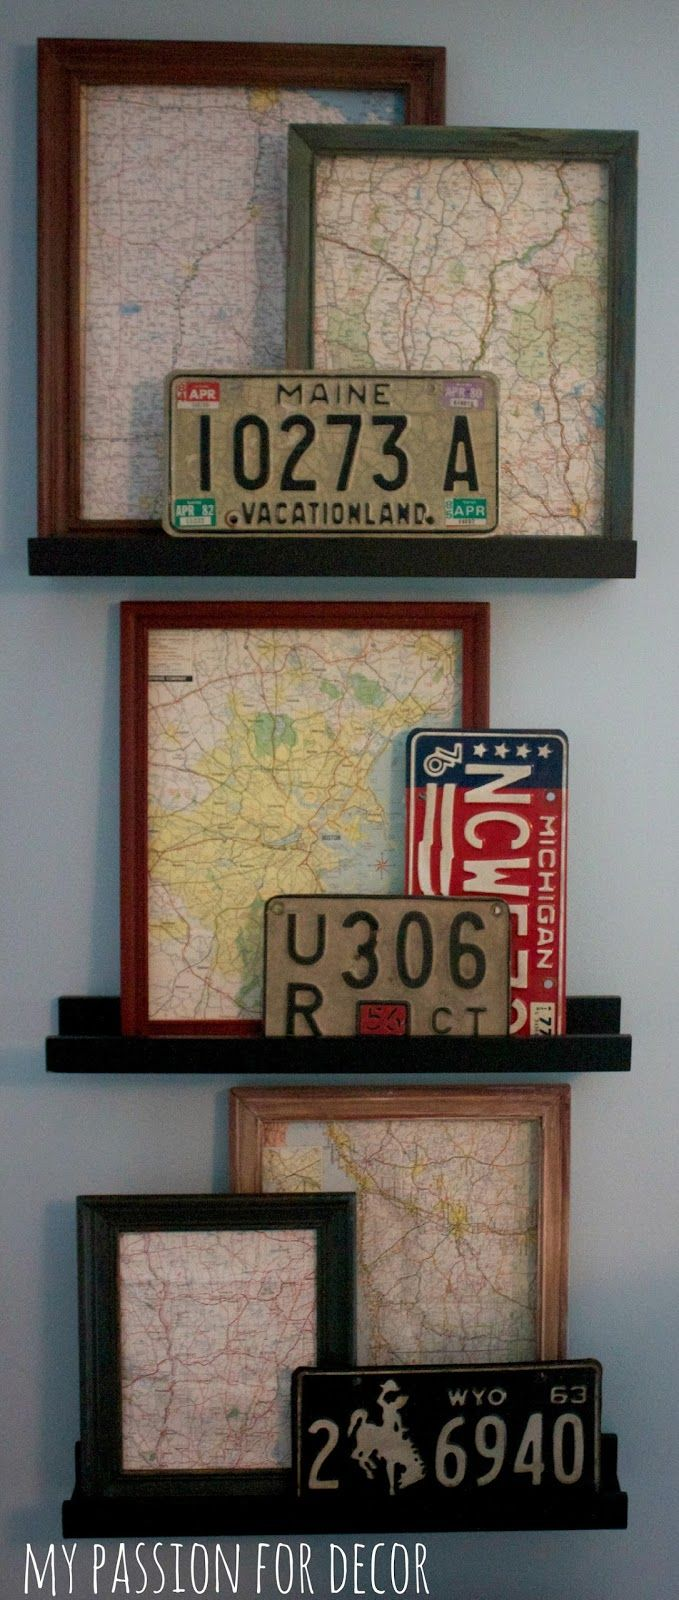 My Passion For Decor frame maps of